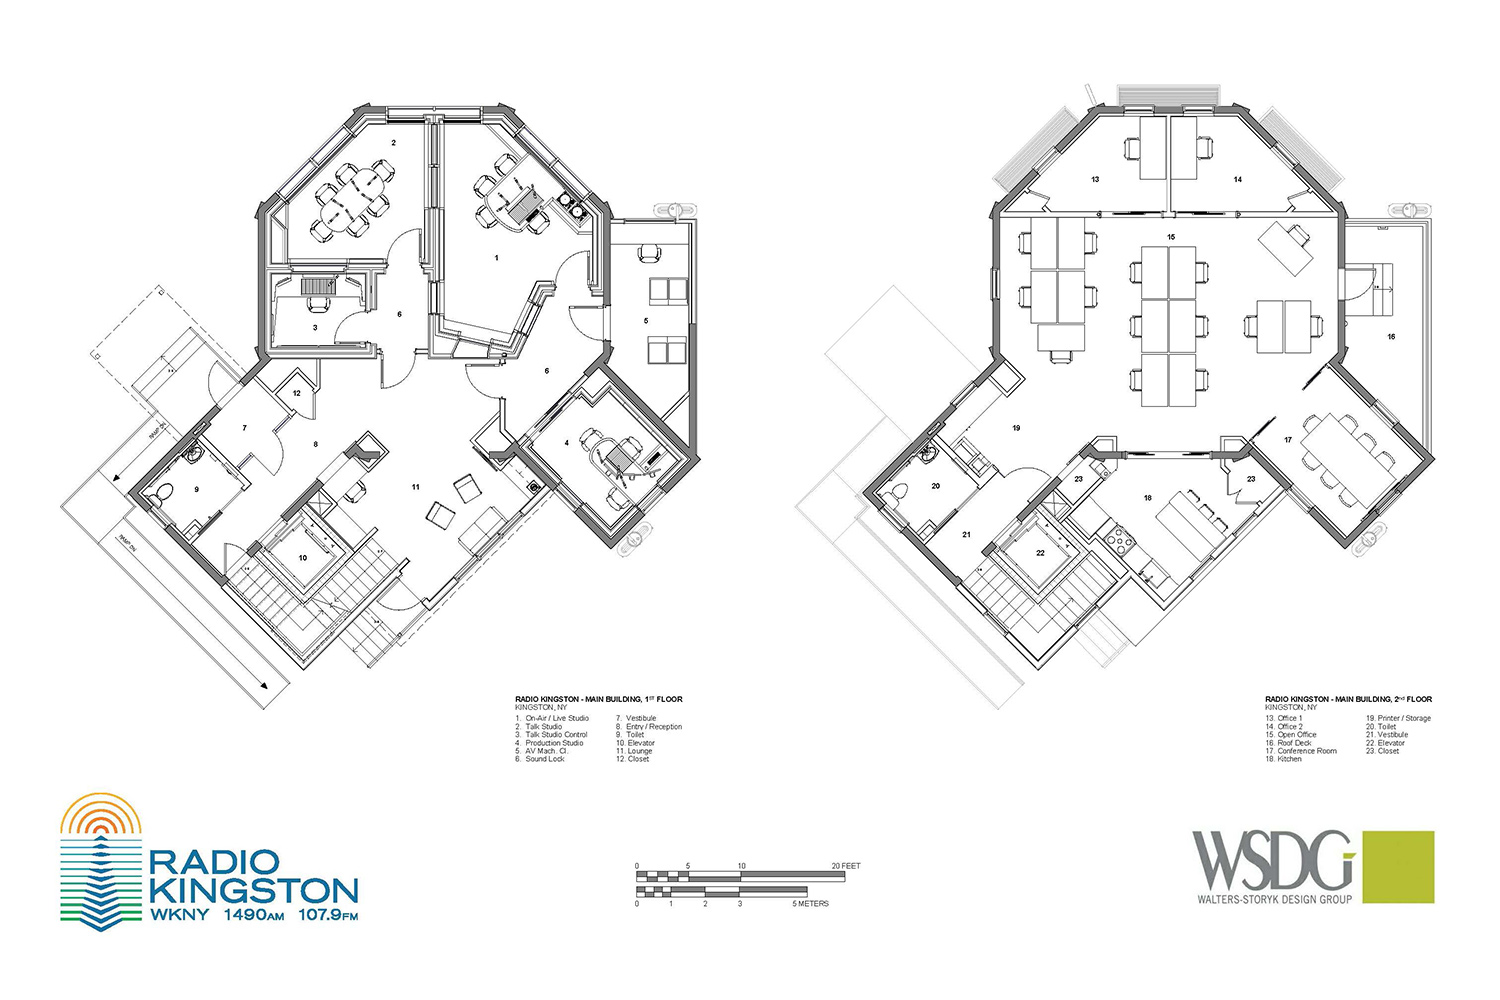 WSDG was retained to design a non-commercial contemporary broadcast/podcast facility for Radio Kingston WKNY new broadcast center. Presentation drawing two floors.